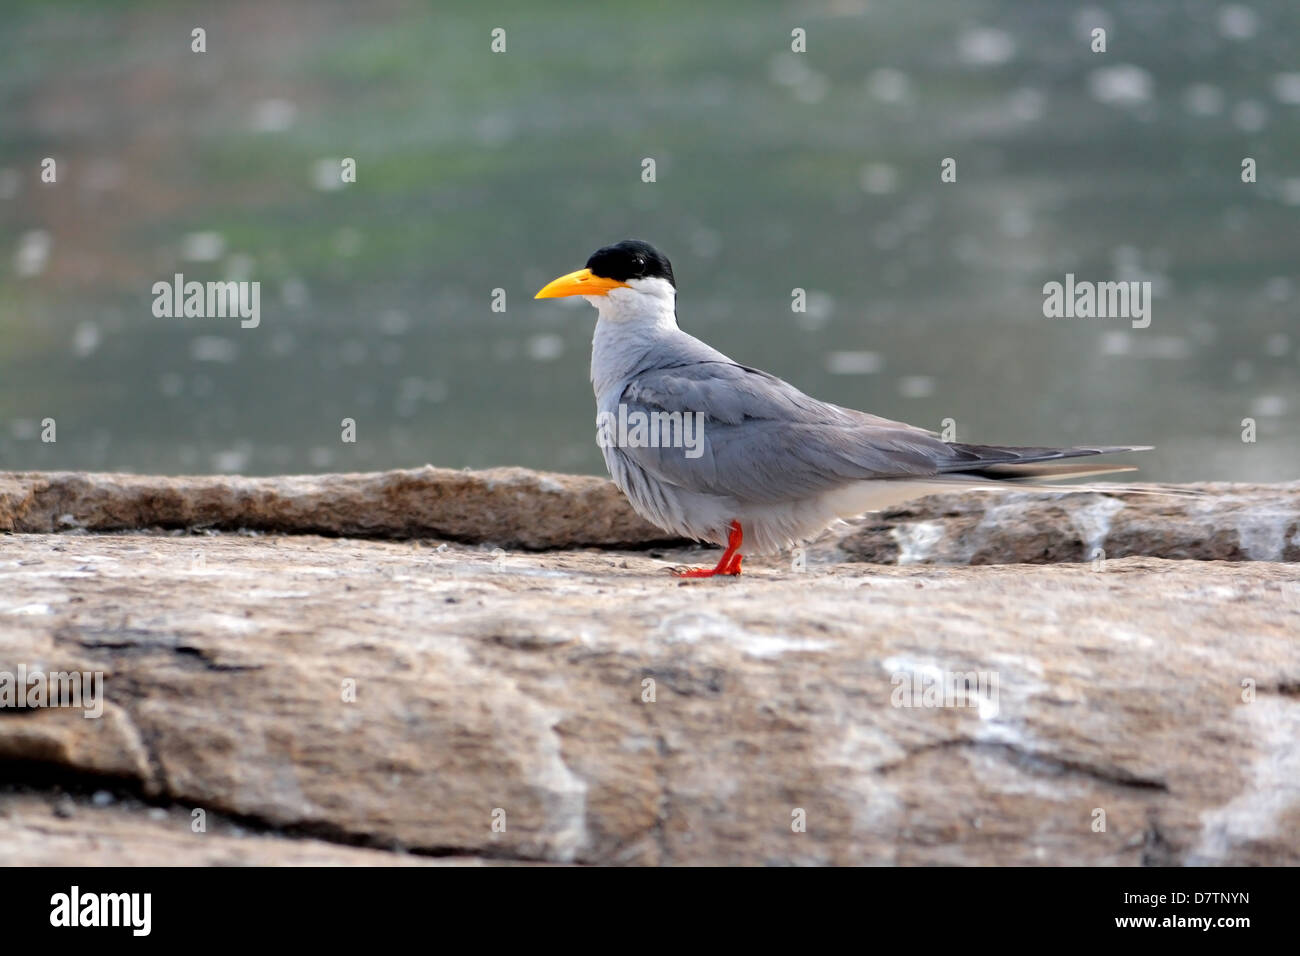 The Indian River Tern, Sterna aurantia - Stock Image